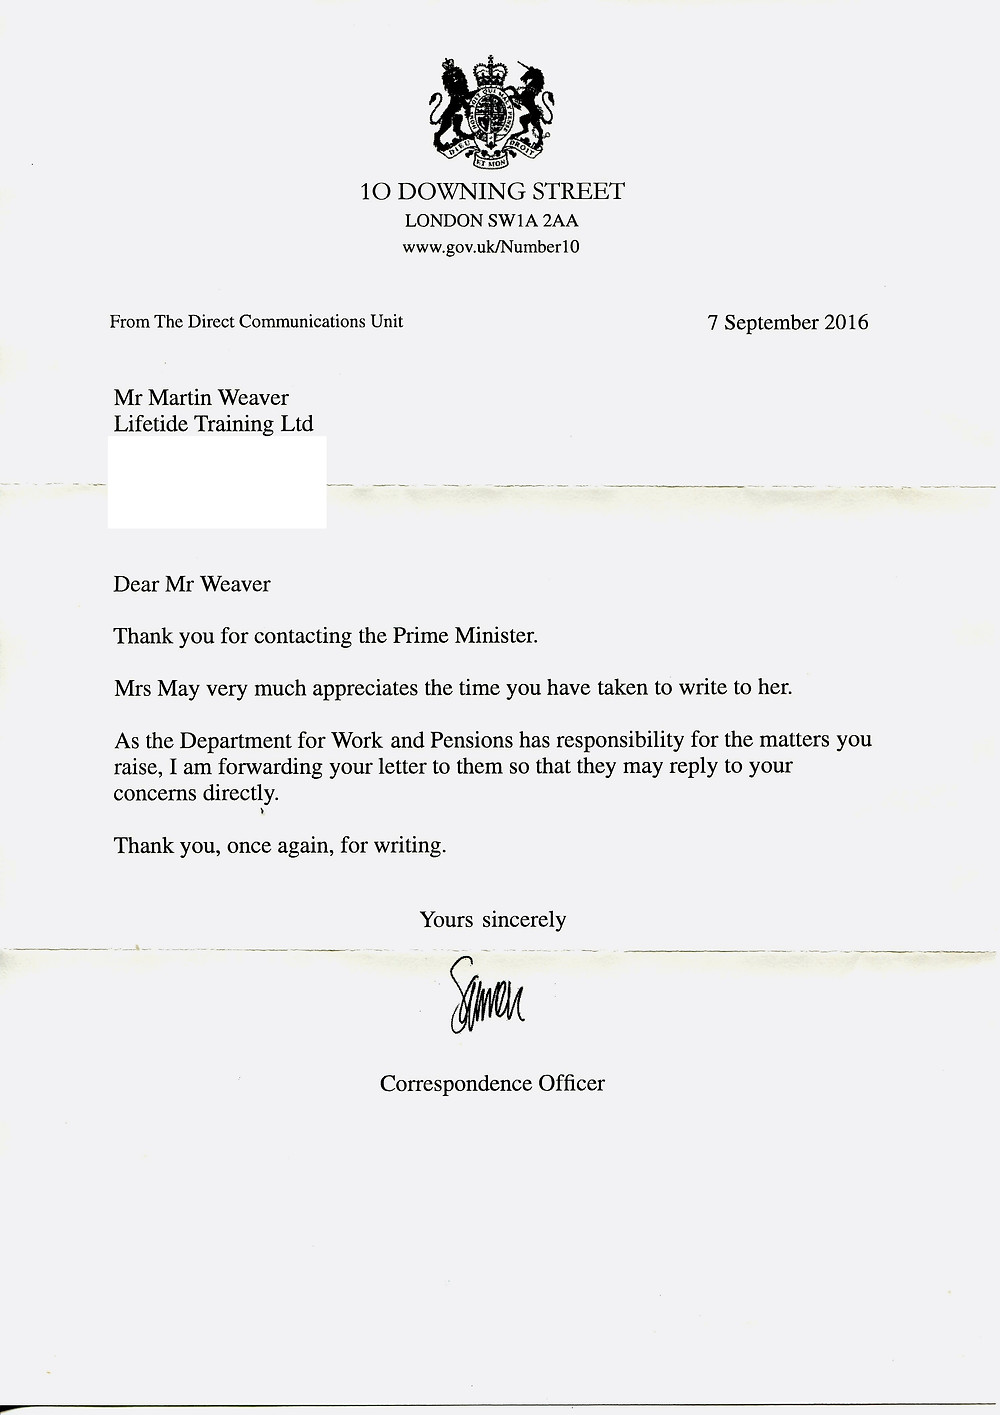 Reply from Mrs May's Office